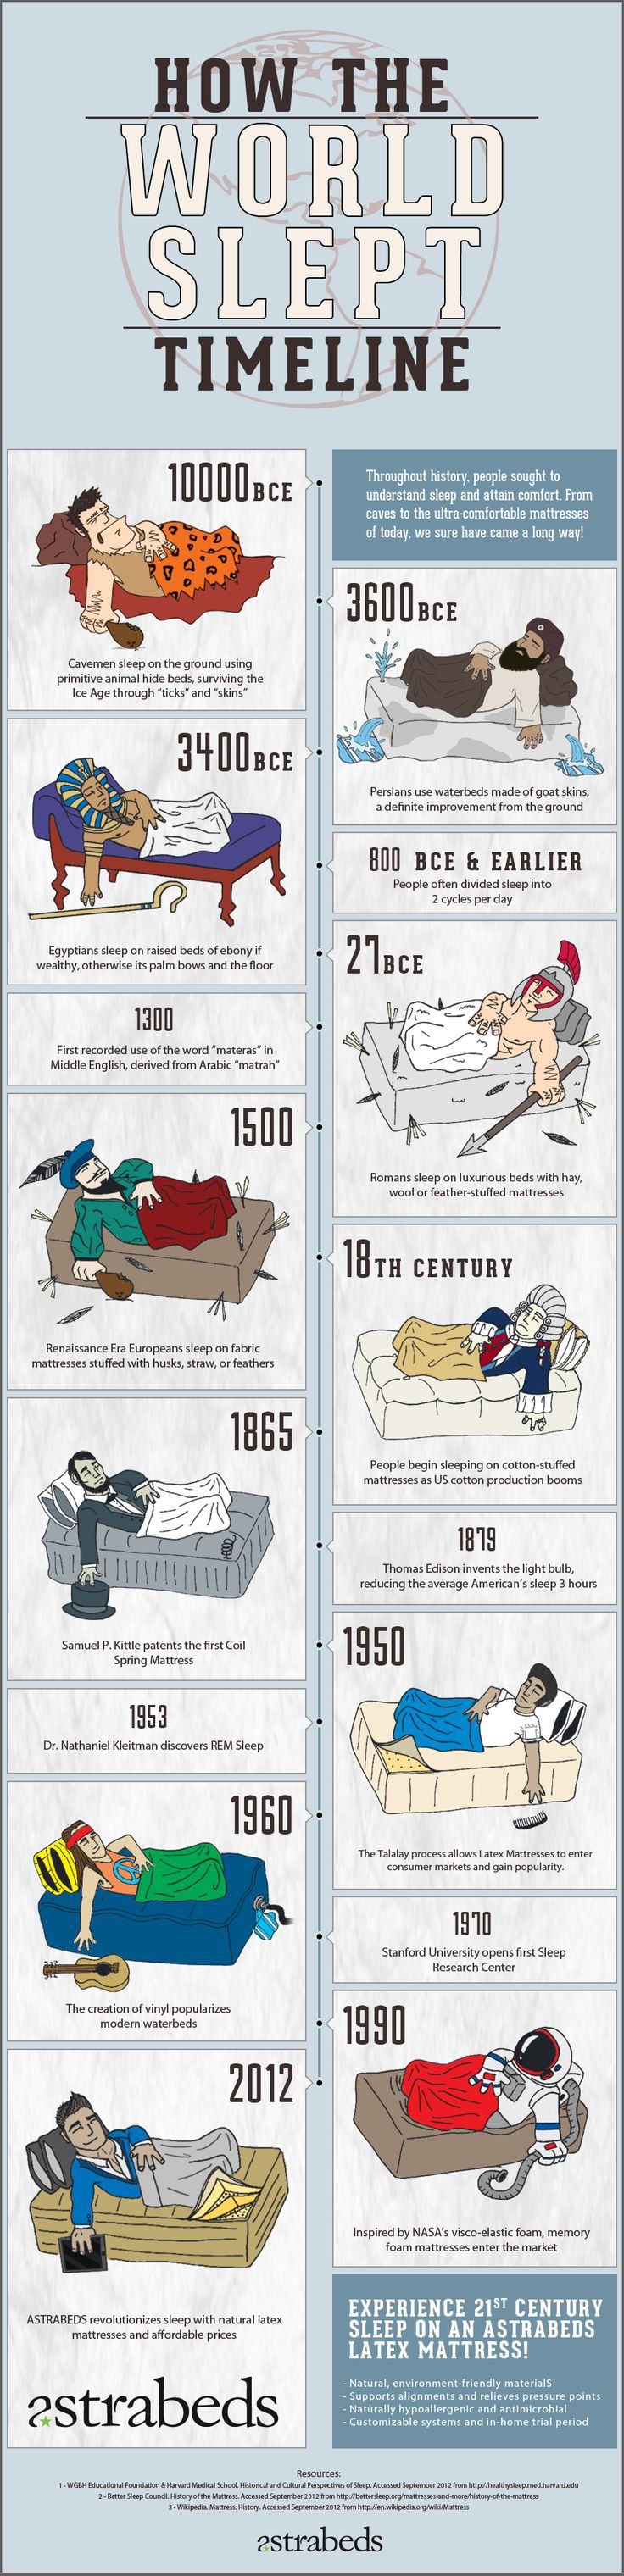 Coture clipart world history History Events of Pinterest presents: